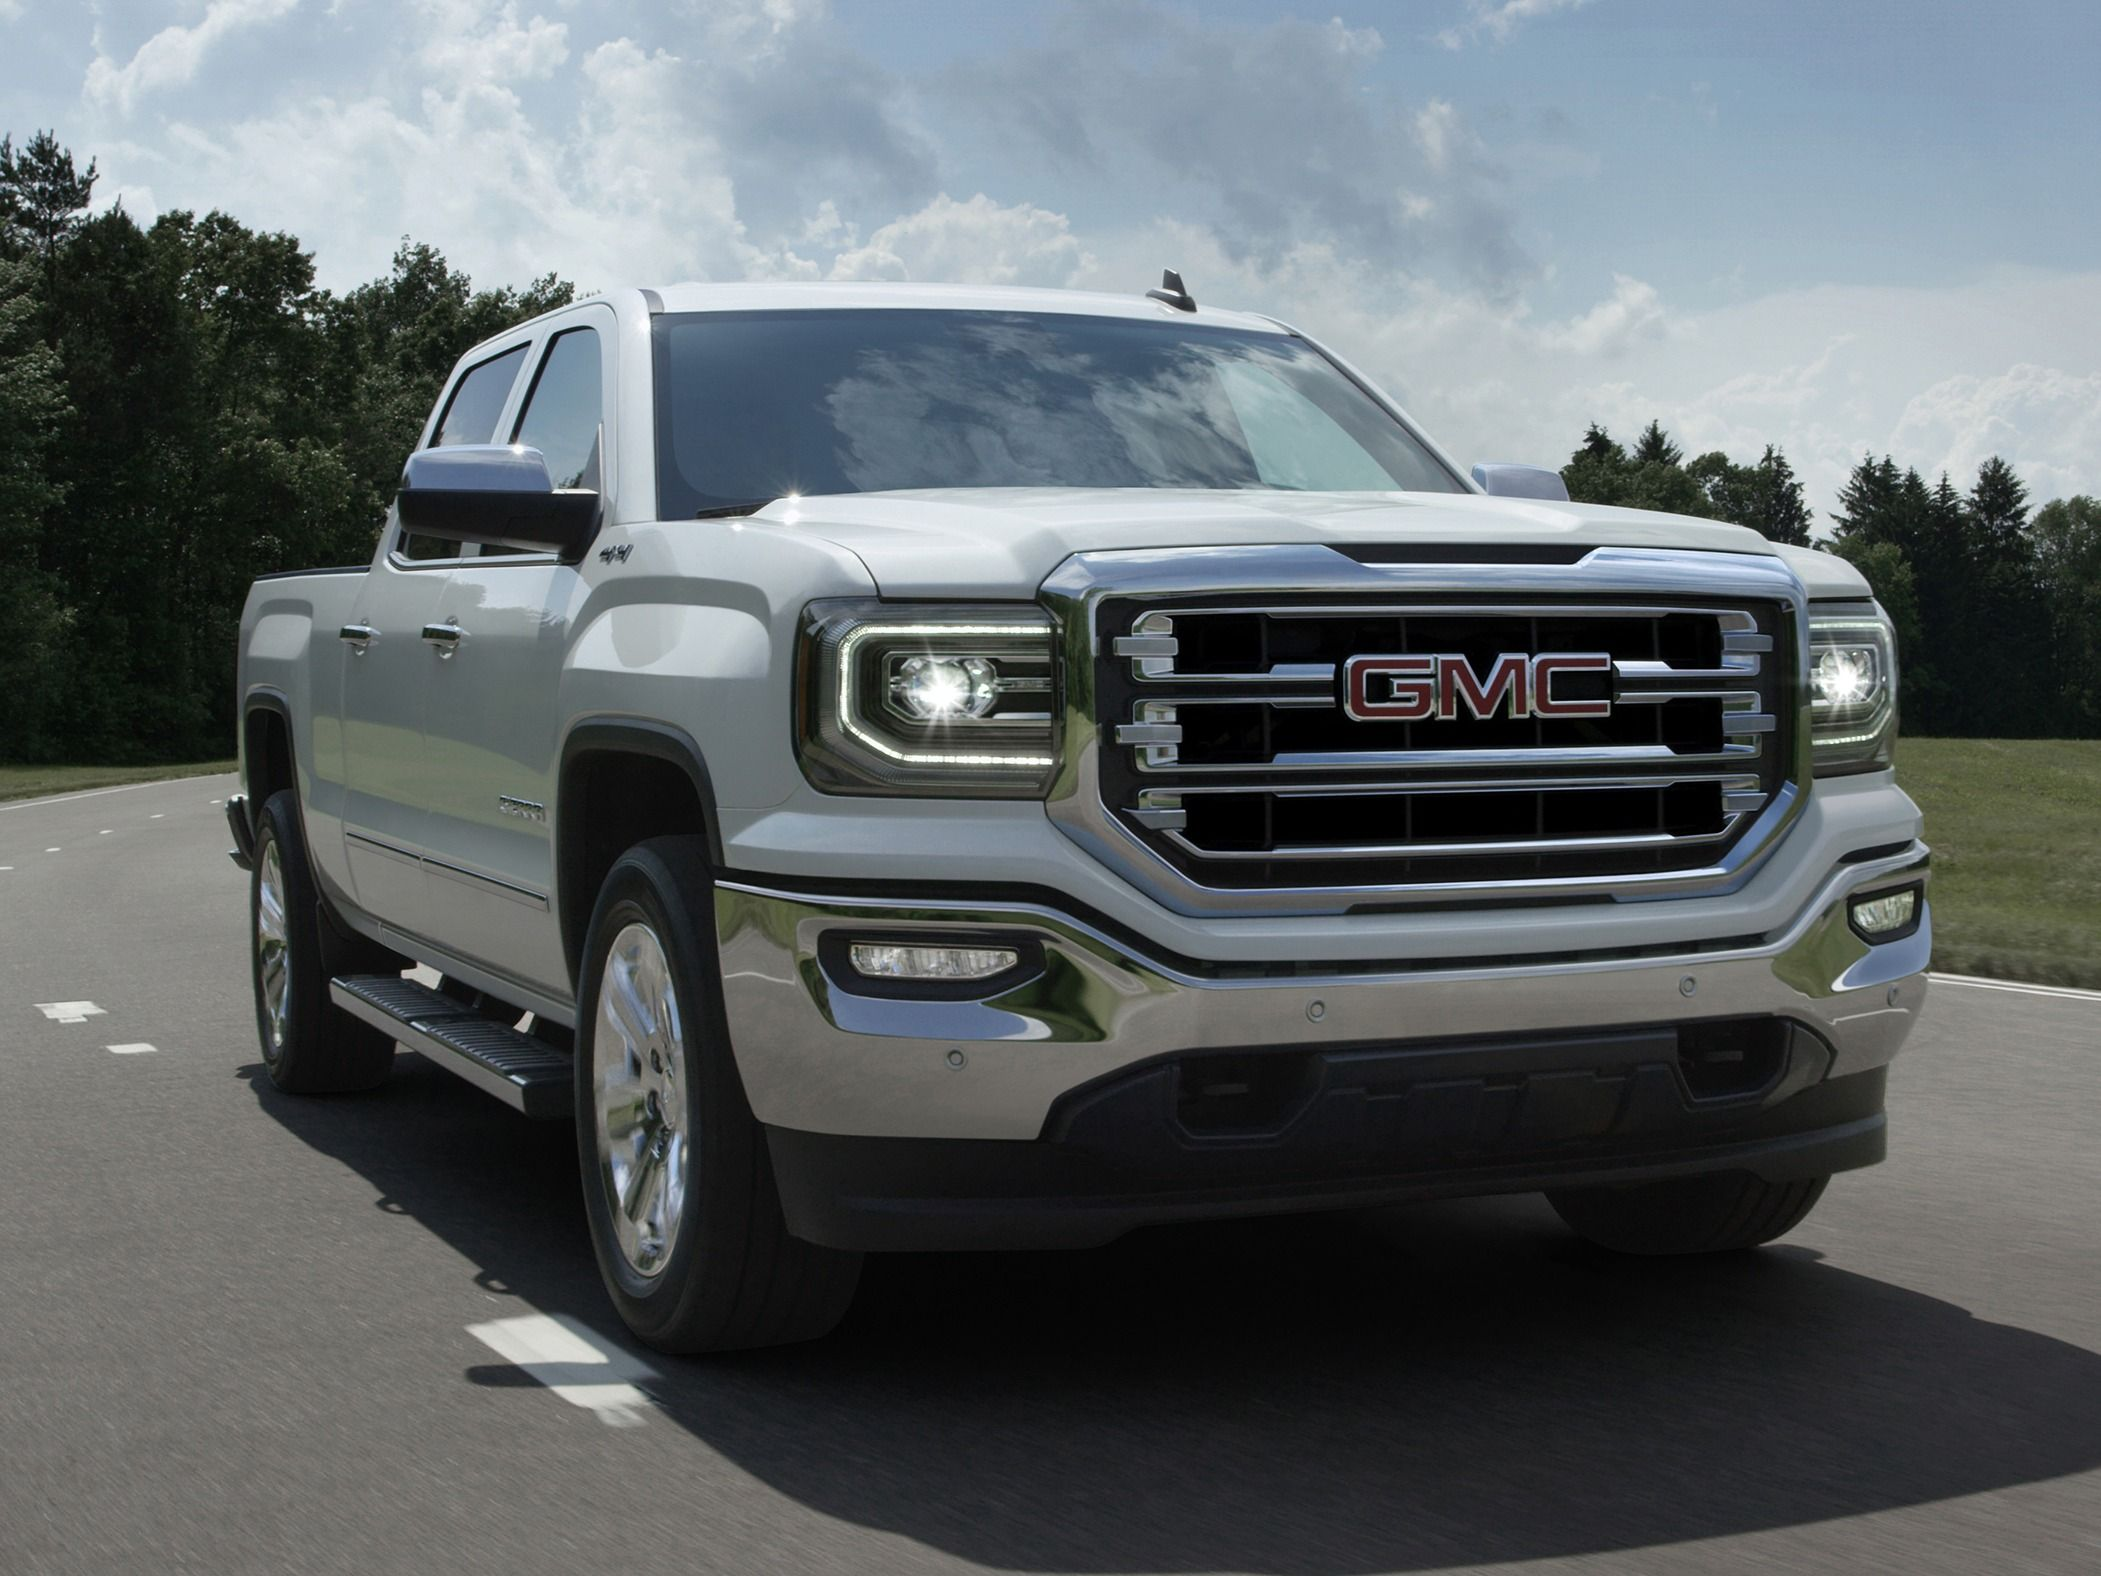 htm sierra truck accessories for new florence ky gmc sale